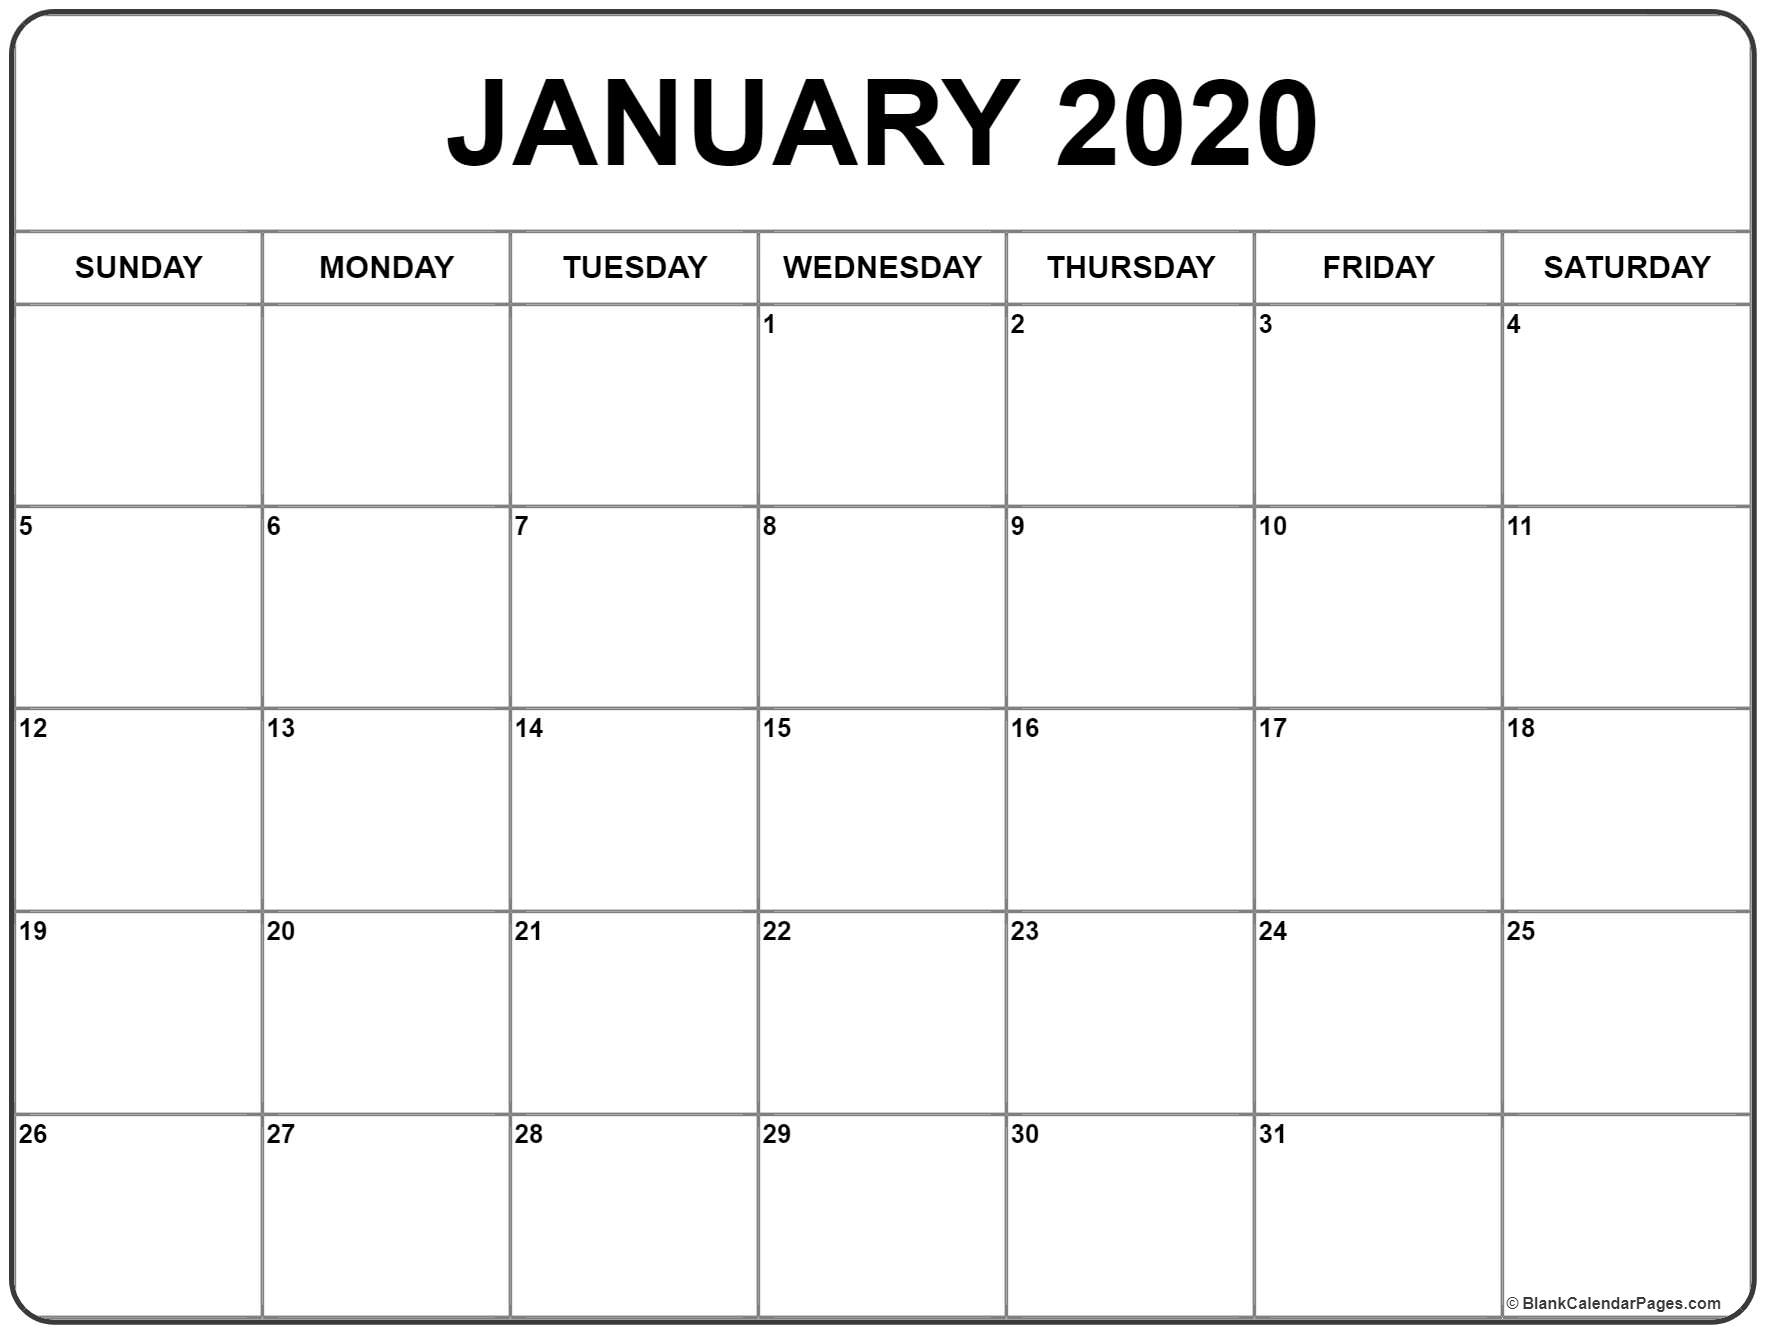 January 2020 Calendar | Free Printable Monthly Calendars Impressive 2020 Calendar With Numbered Days